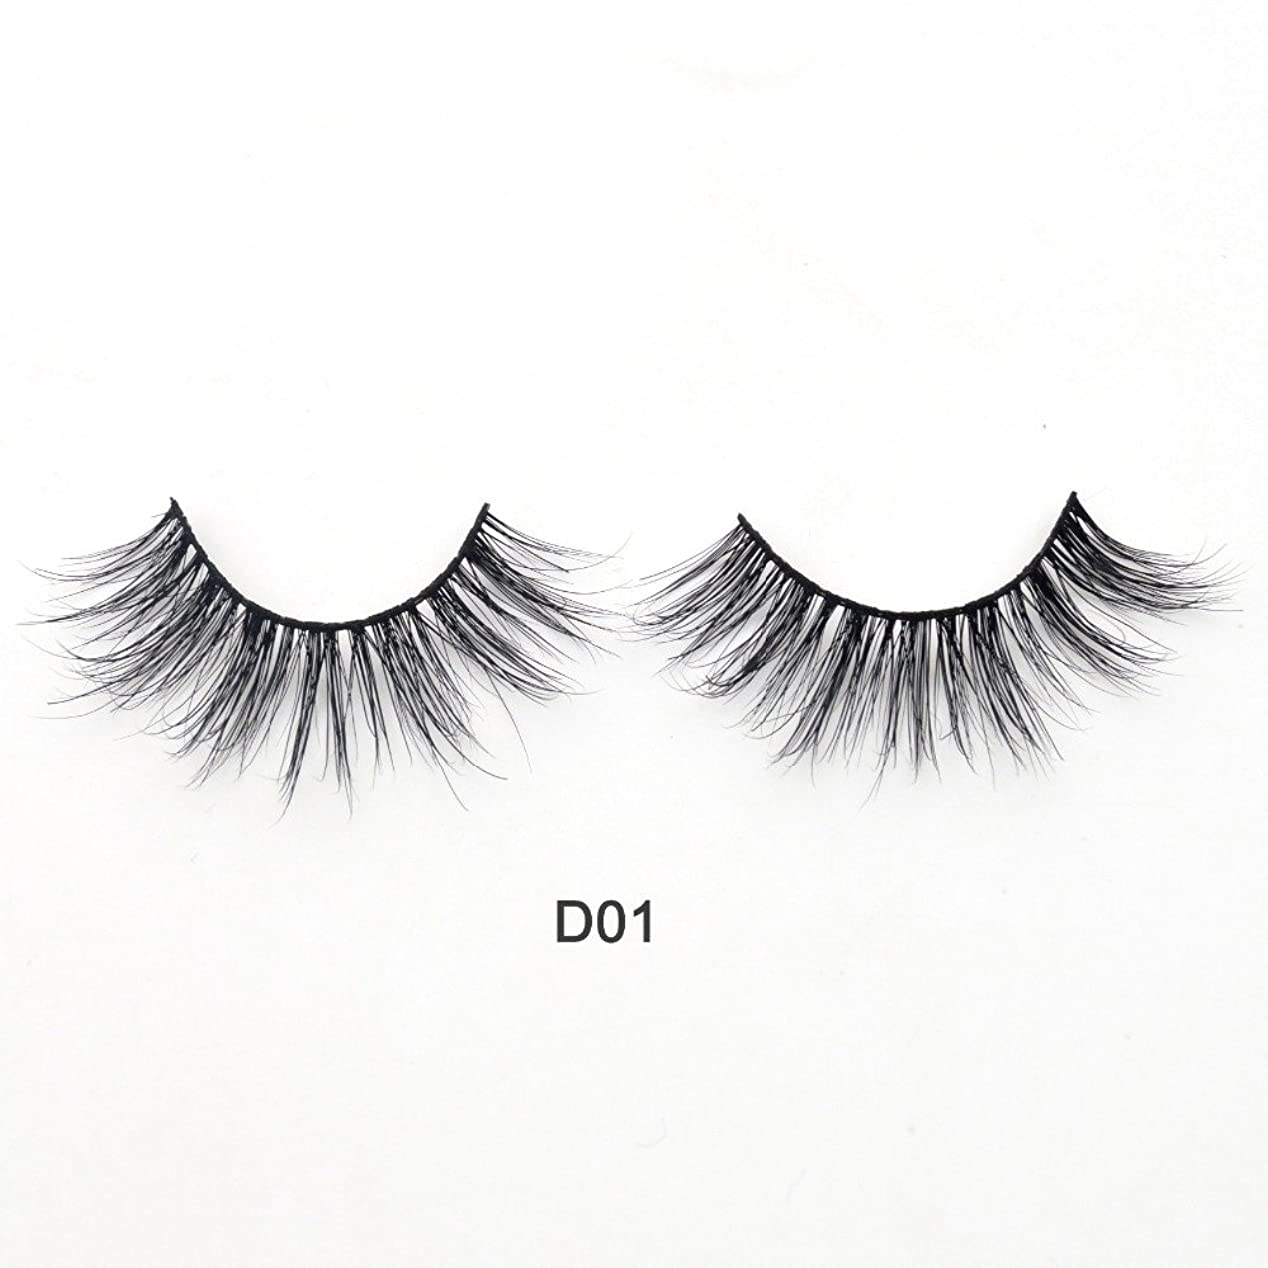 しない花弁サーバント(D01) Visofree Eyelashes 3D Mink Lashes Luxury Hand Made Mink Eyelashes Medium Volume Cruelty Free Mink False Eyelashes Upper Lashes